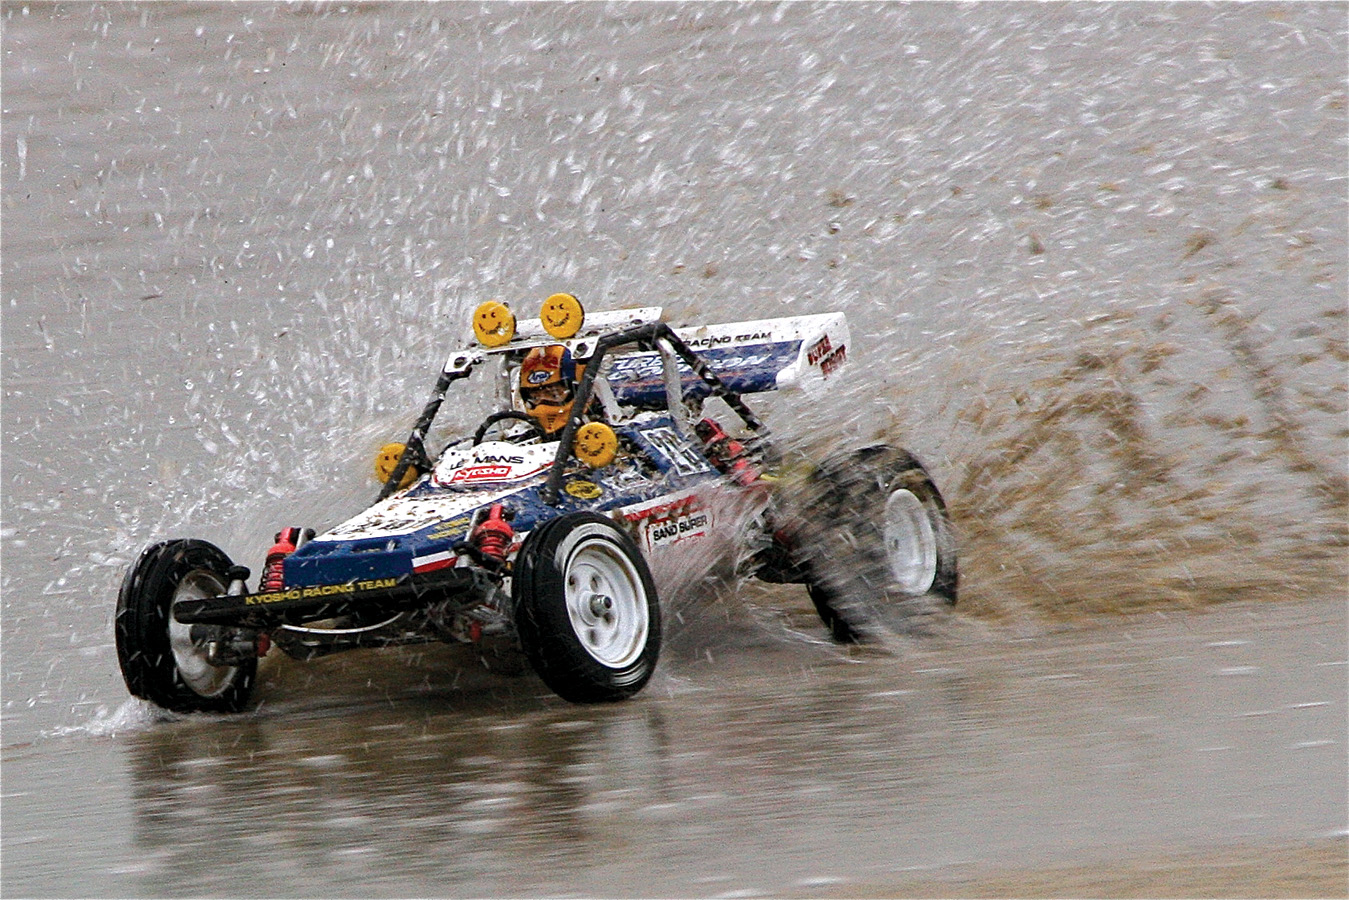 Readers' Rides: Kyosho Turbo Scorpion [May 2012]